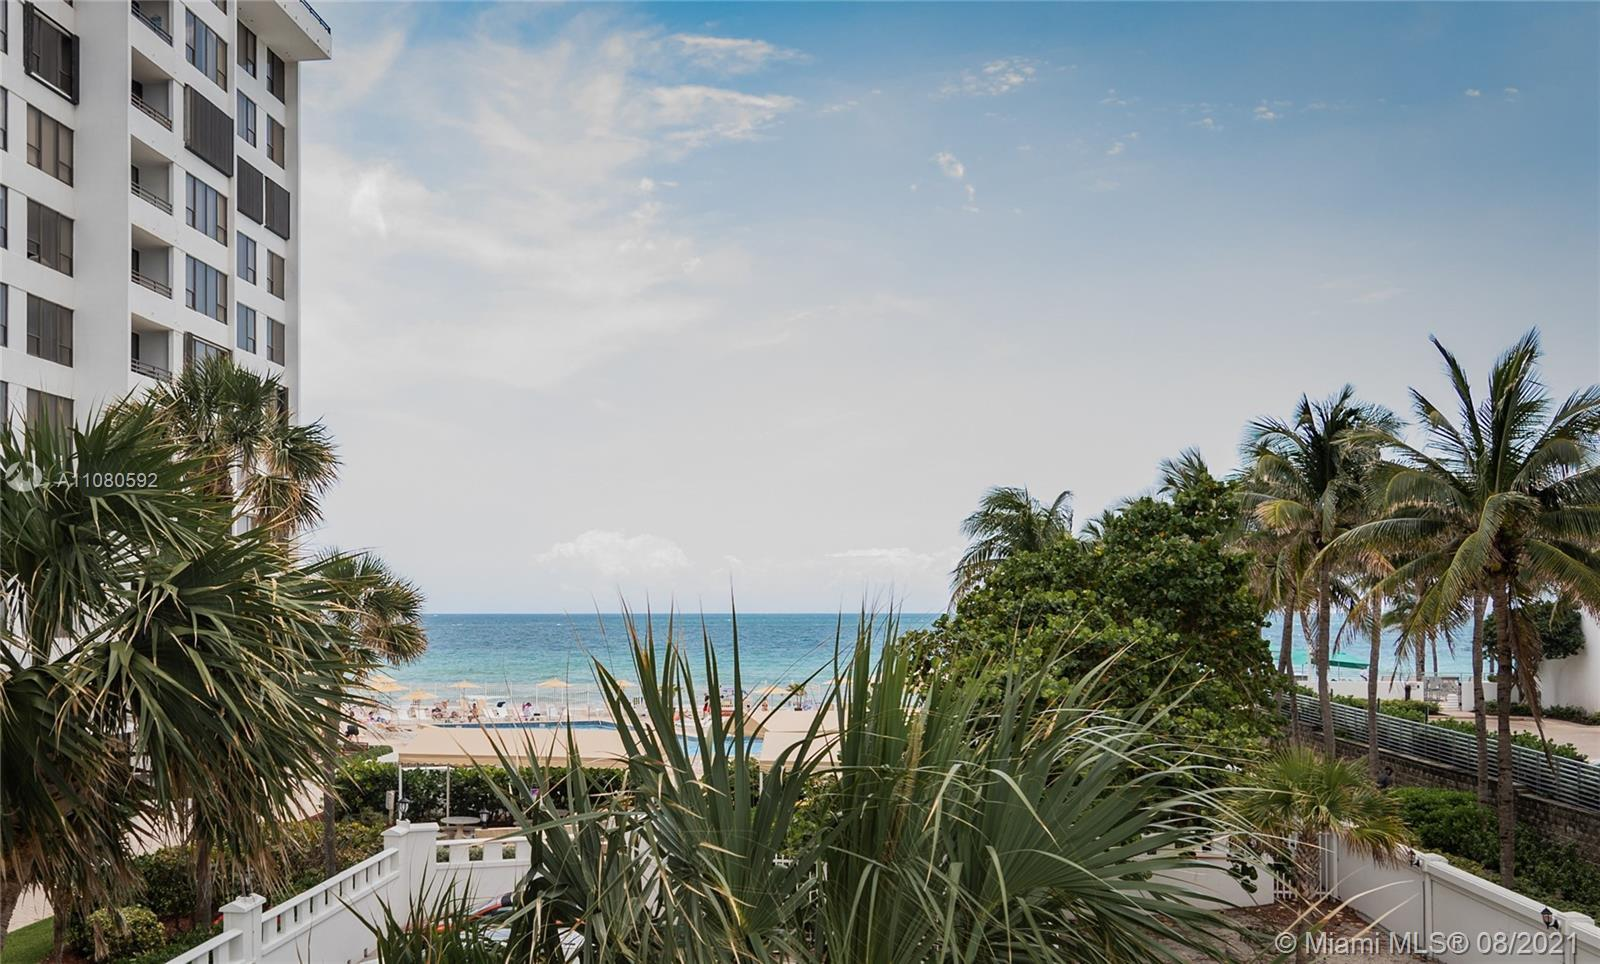 REMODELED CORNER 2/2 UNIT WITH TRANQUILE DIRECT OCEAN & POOL VIEW FROM THE OPEN BALCONY AND BEDROOM